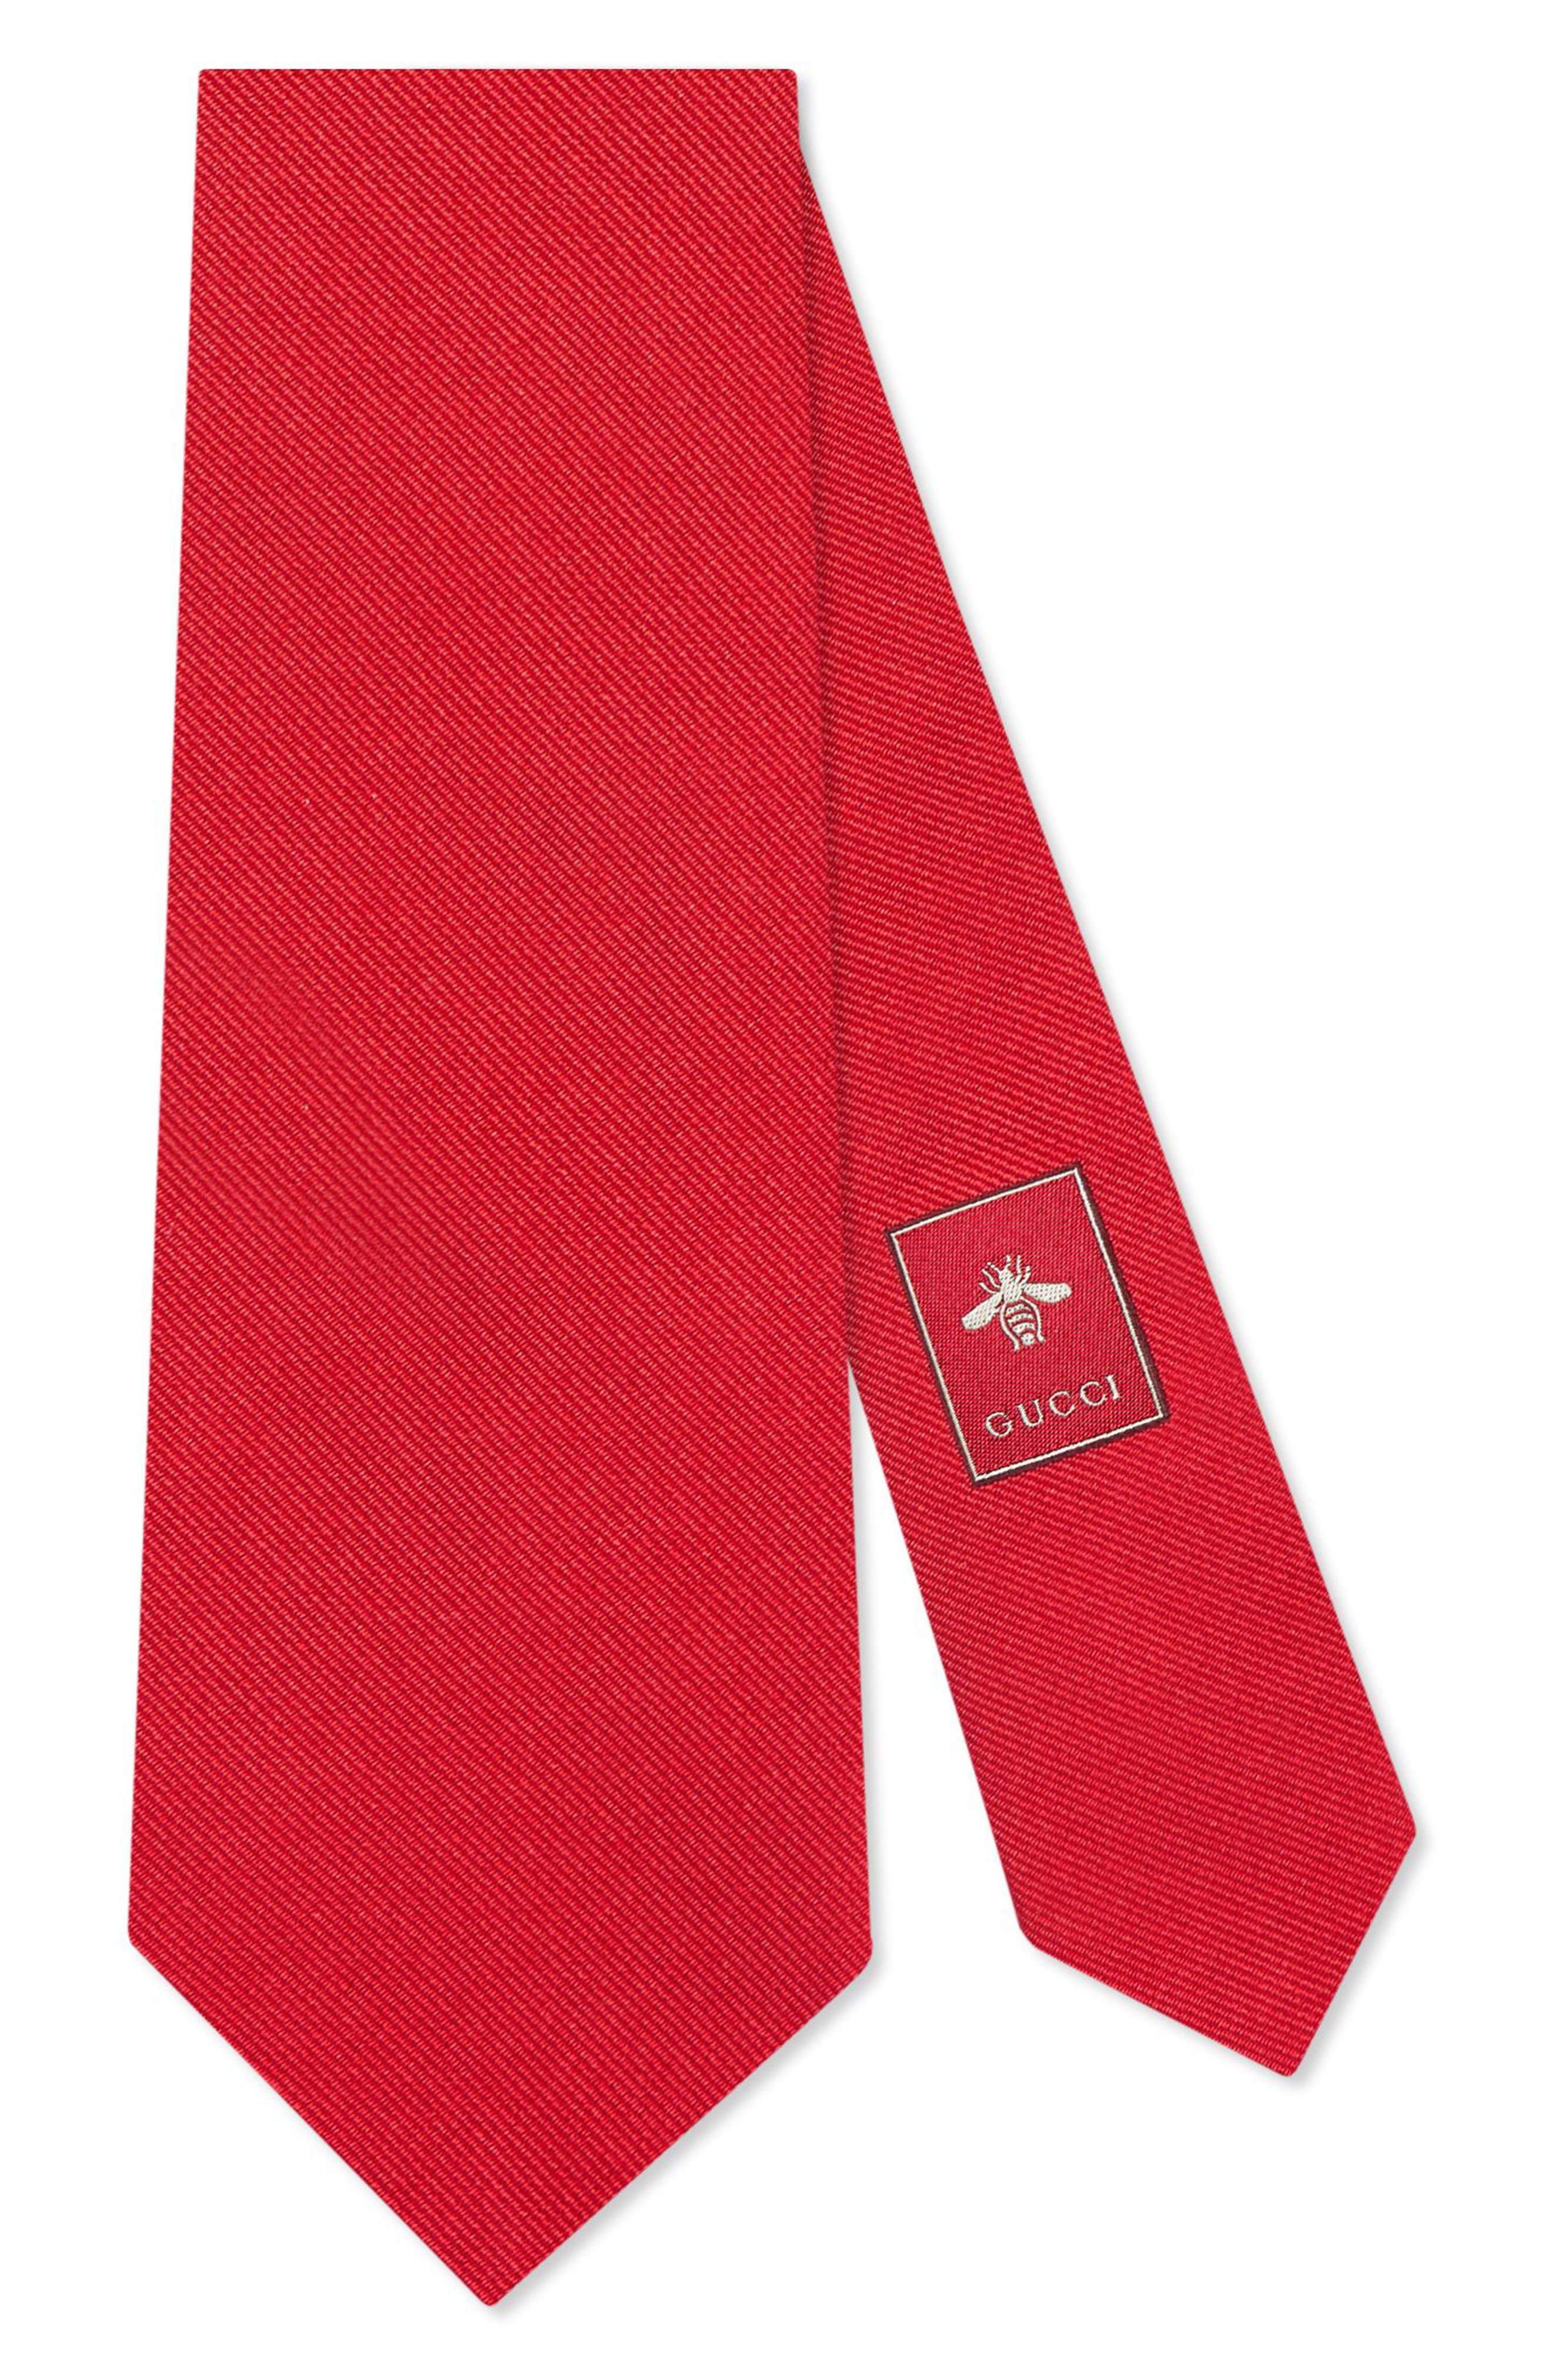 Tiger Embroidered Silk Tie,                         Main,                         color, RED